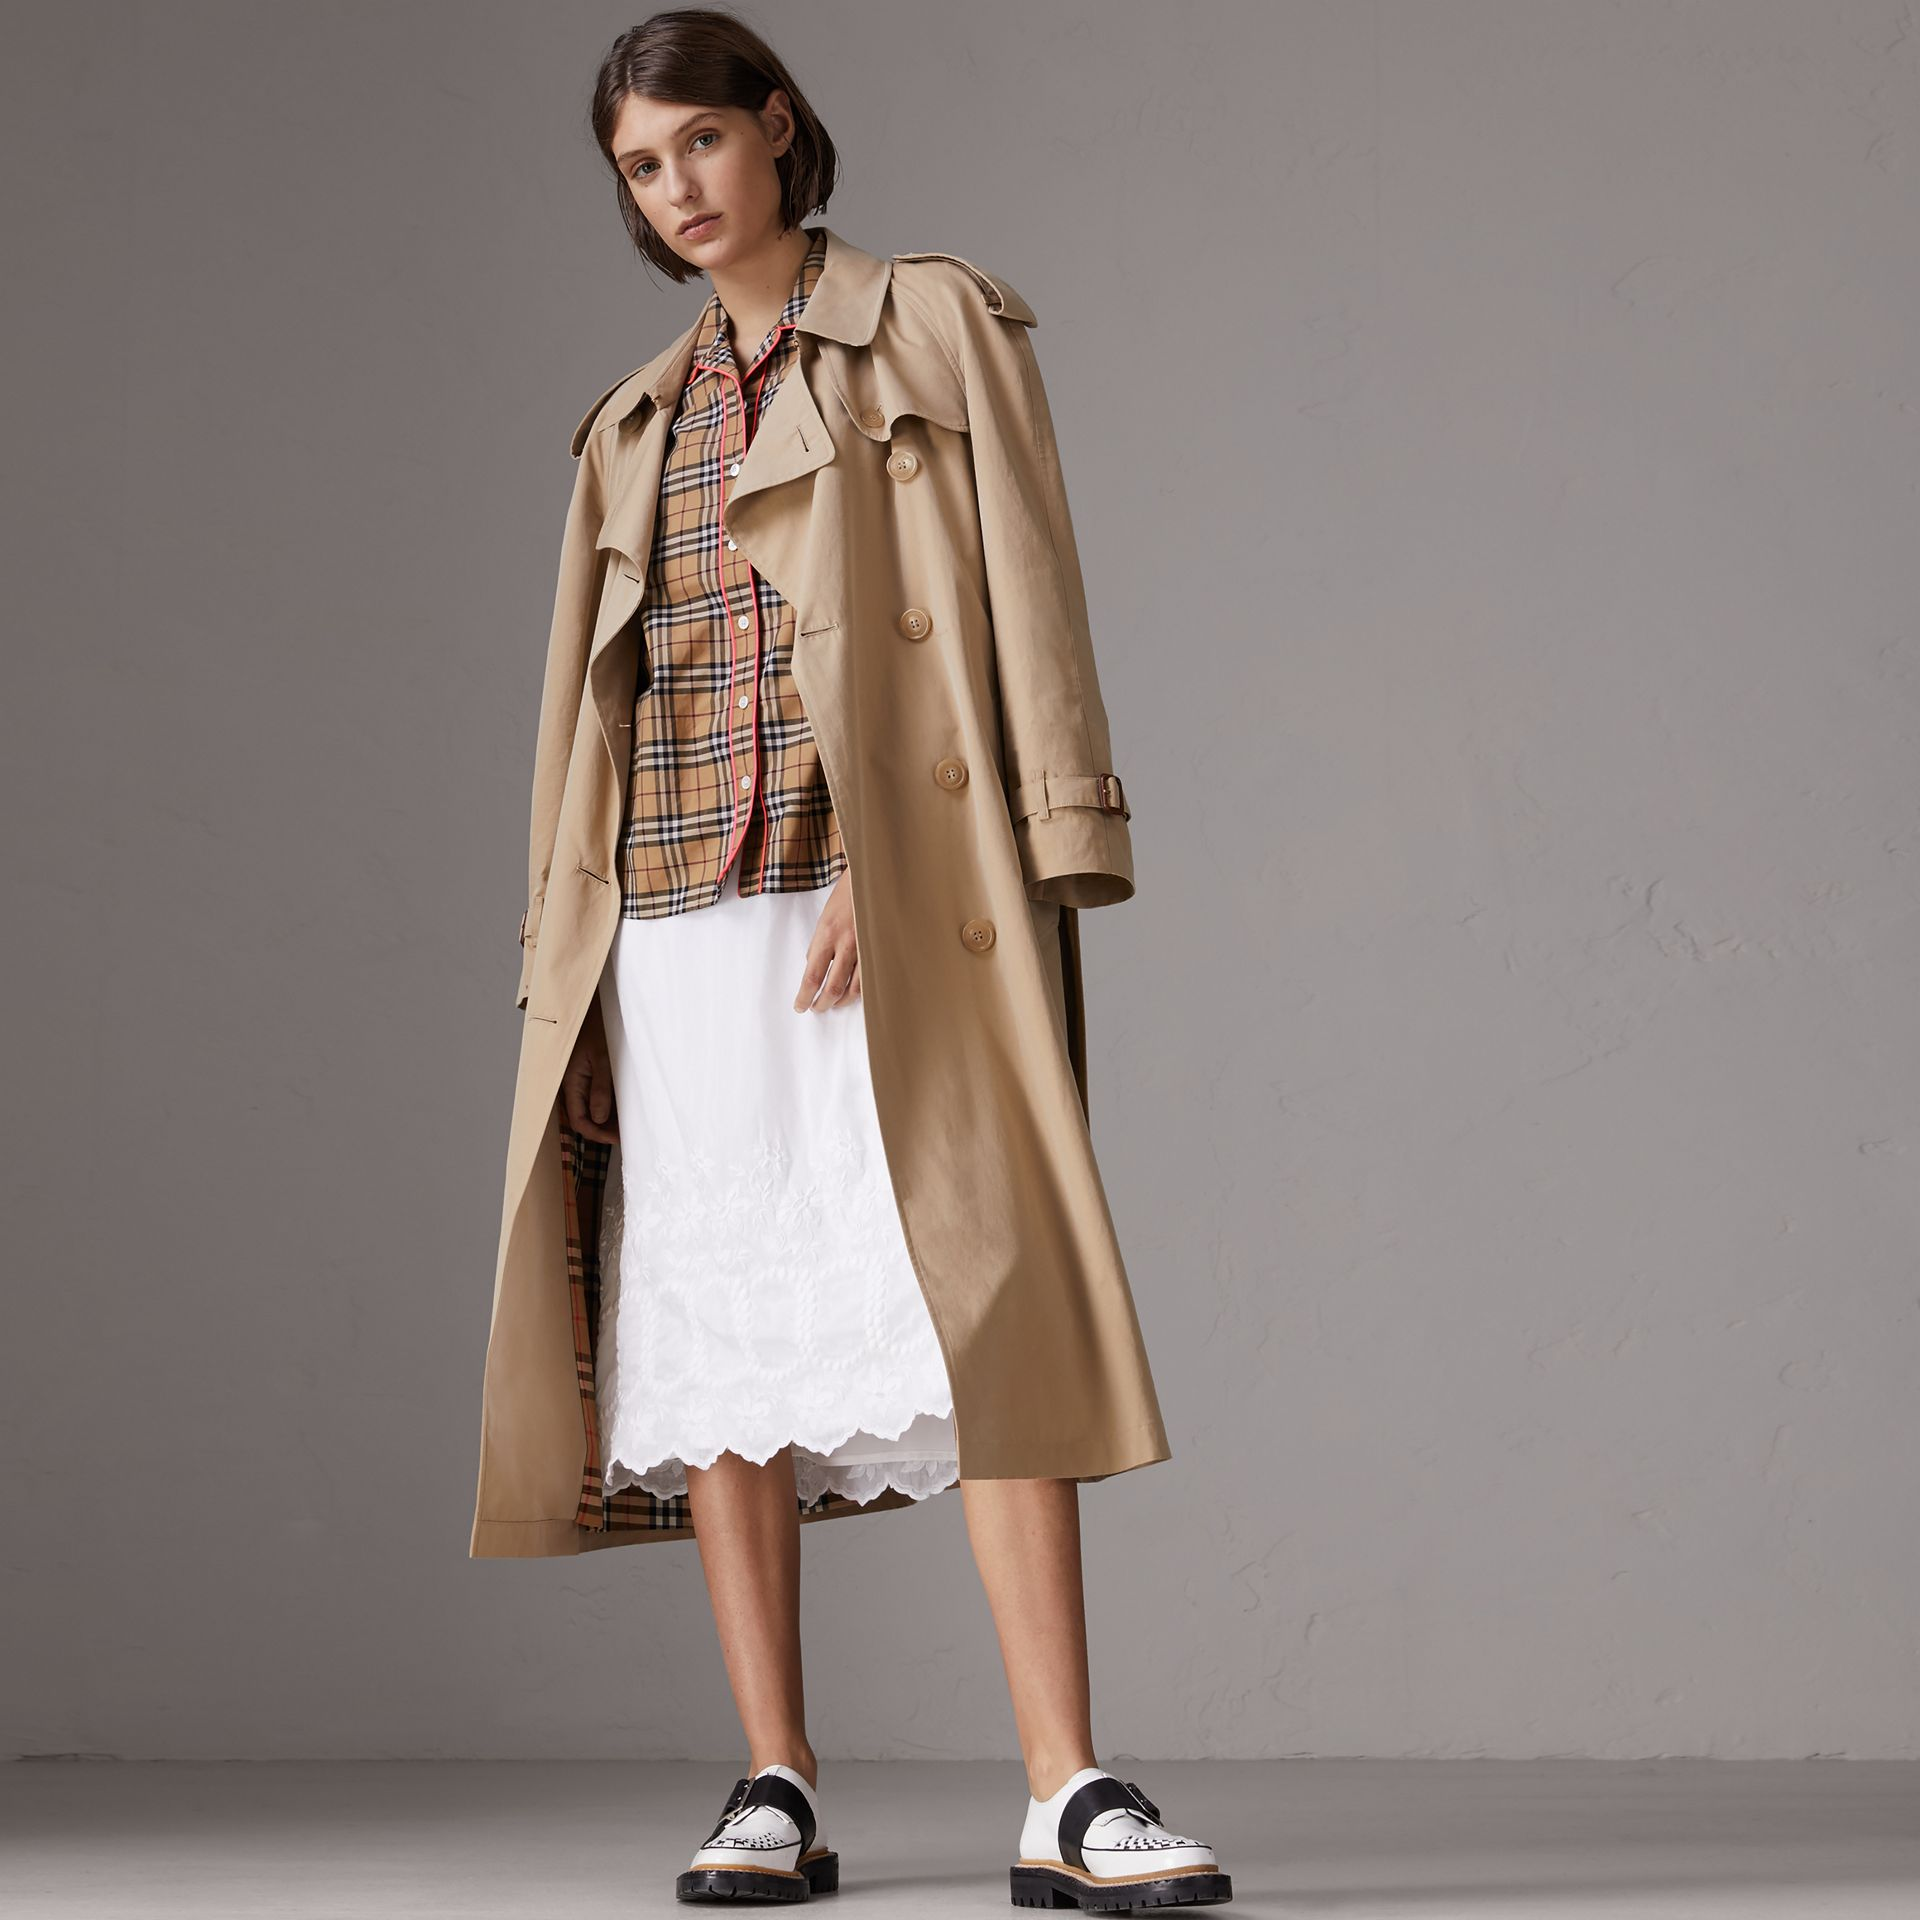 Contrast Piping Vintage Check Pyjama-style Shirt in Camel - Women | Burberry Australia - gallery image 4